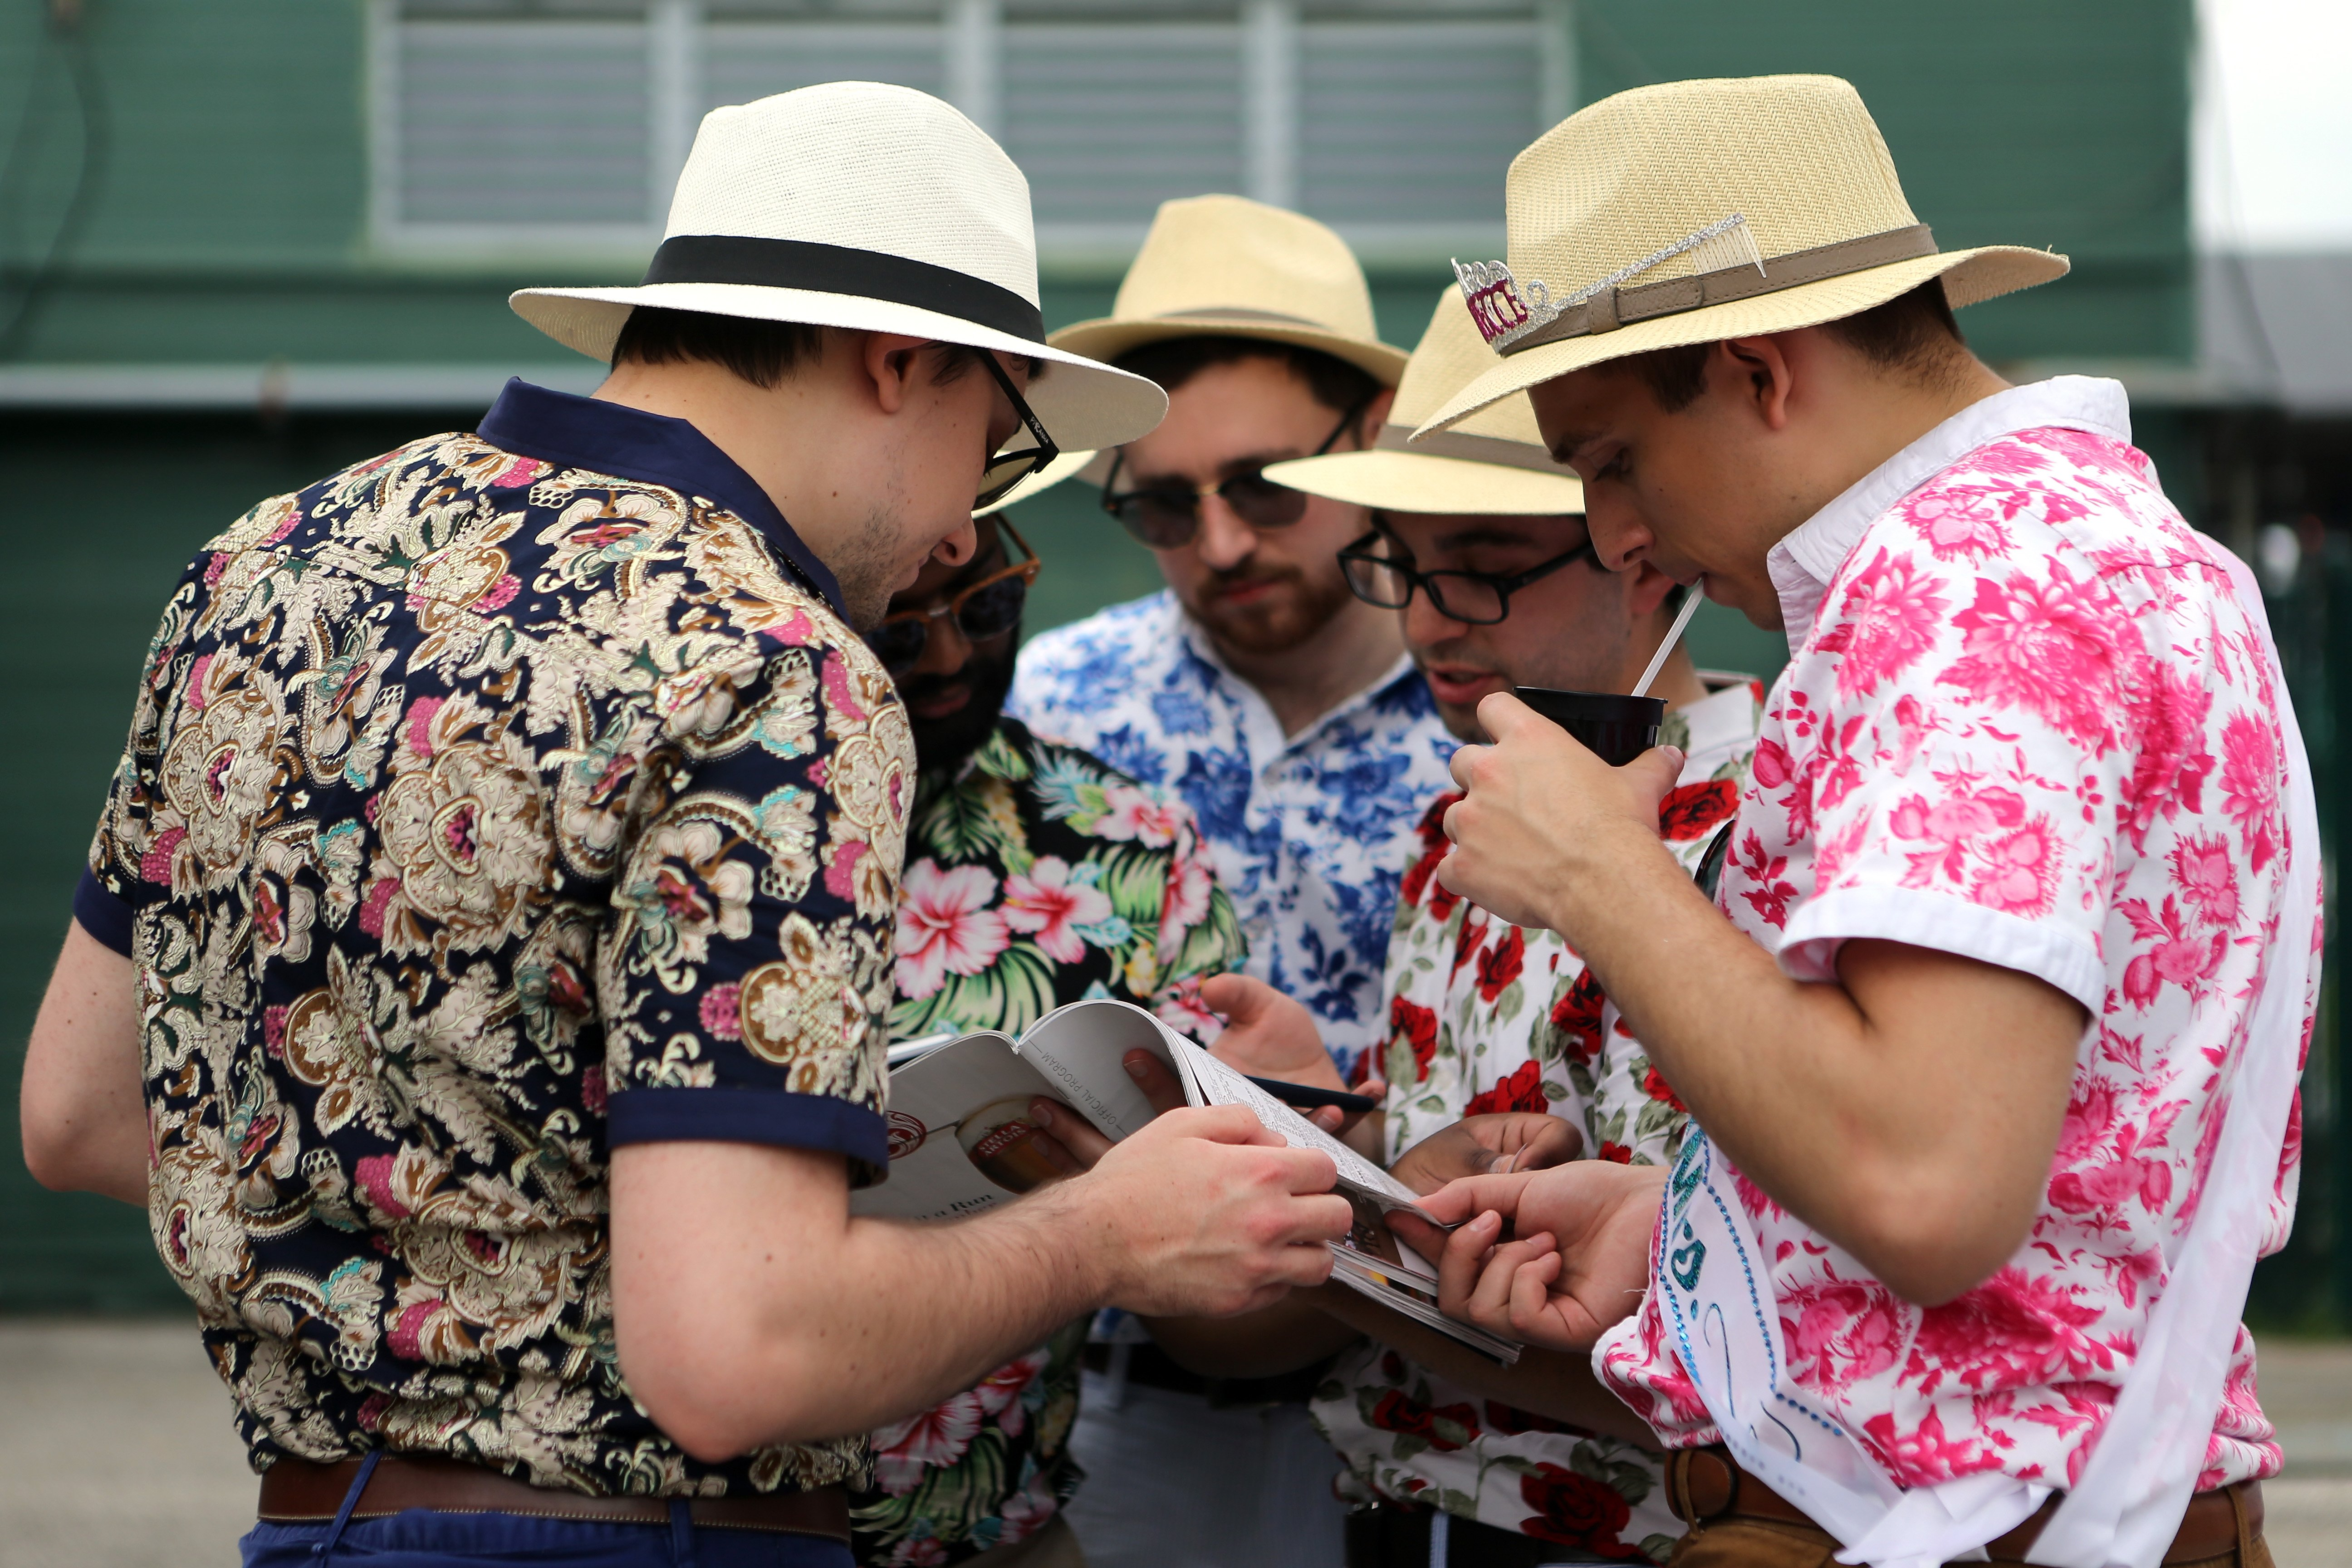 Men with hats during the 142nd running of the Kentucky Oaks horse race at Churchill Downs on May 7, 2016, in Louisville, Ky.